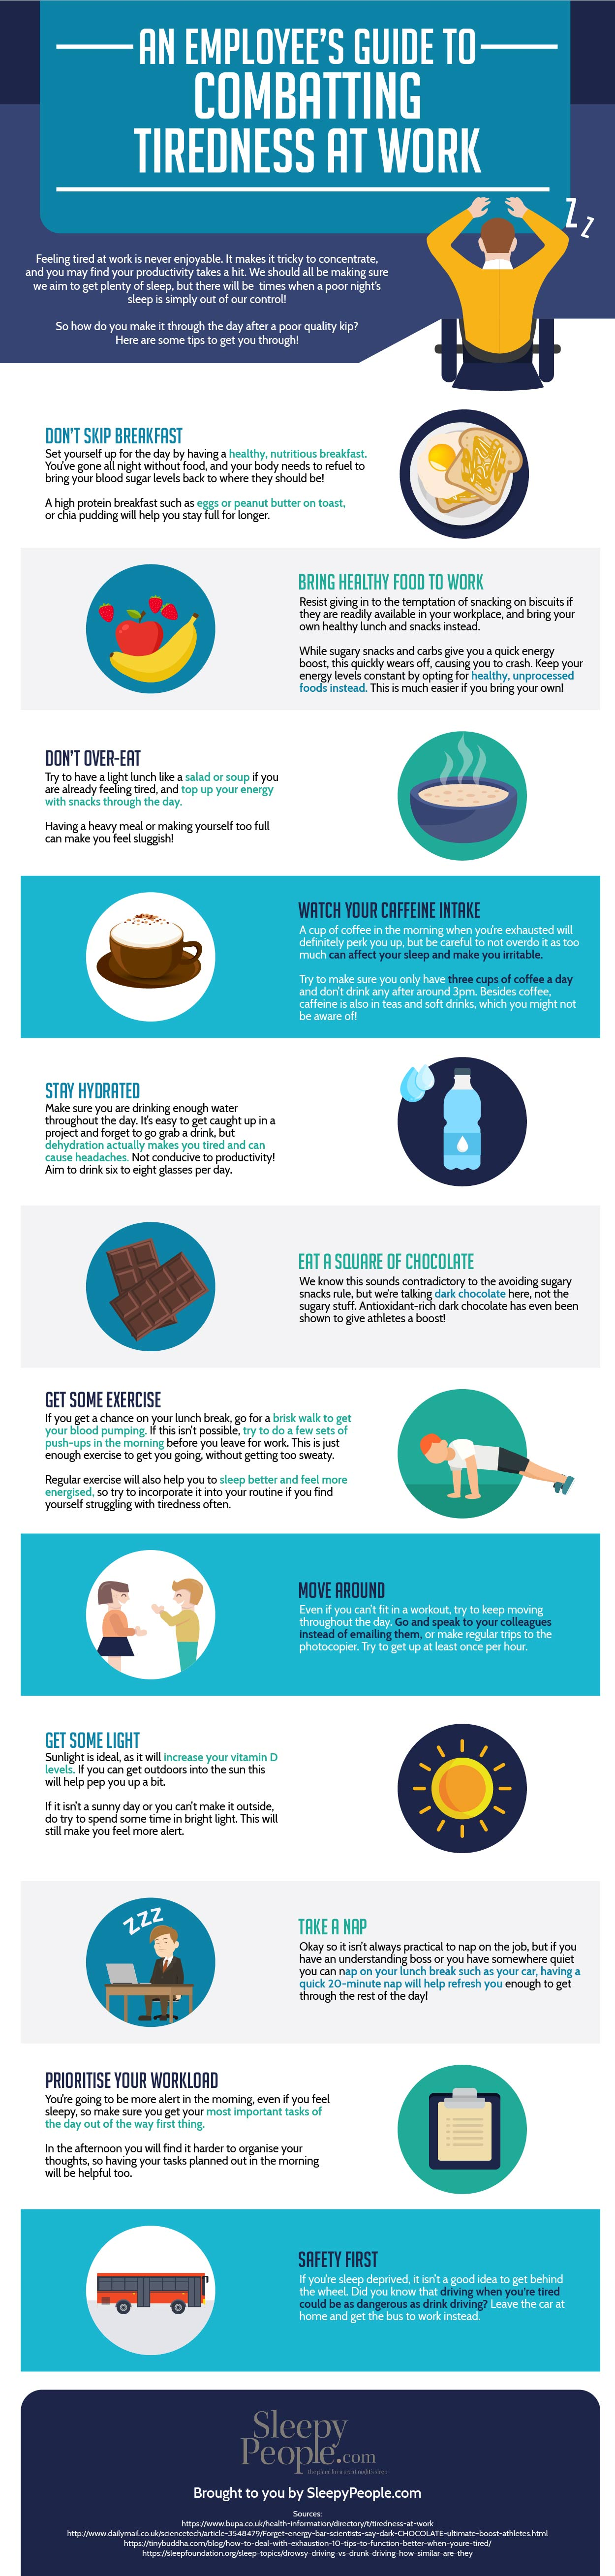 An Employee's Guide To Combatting Tiredness At Work [infographic]